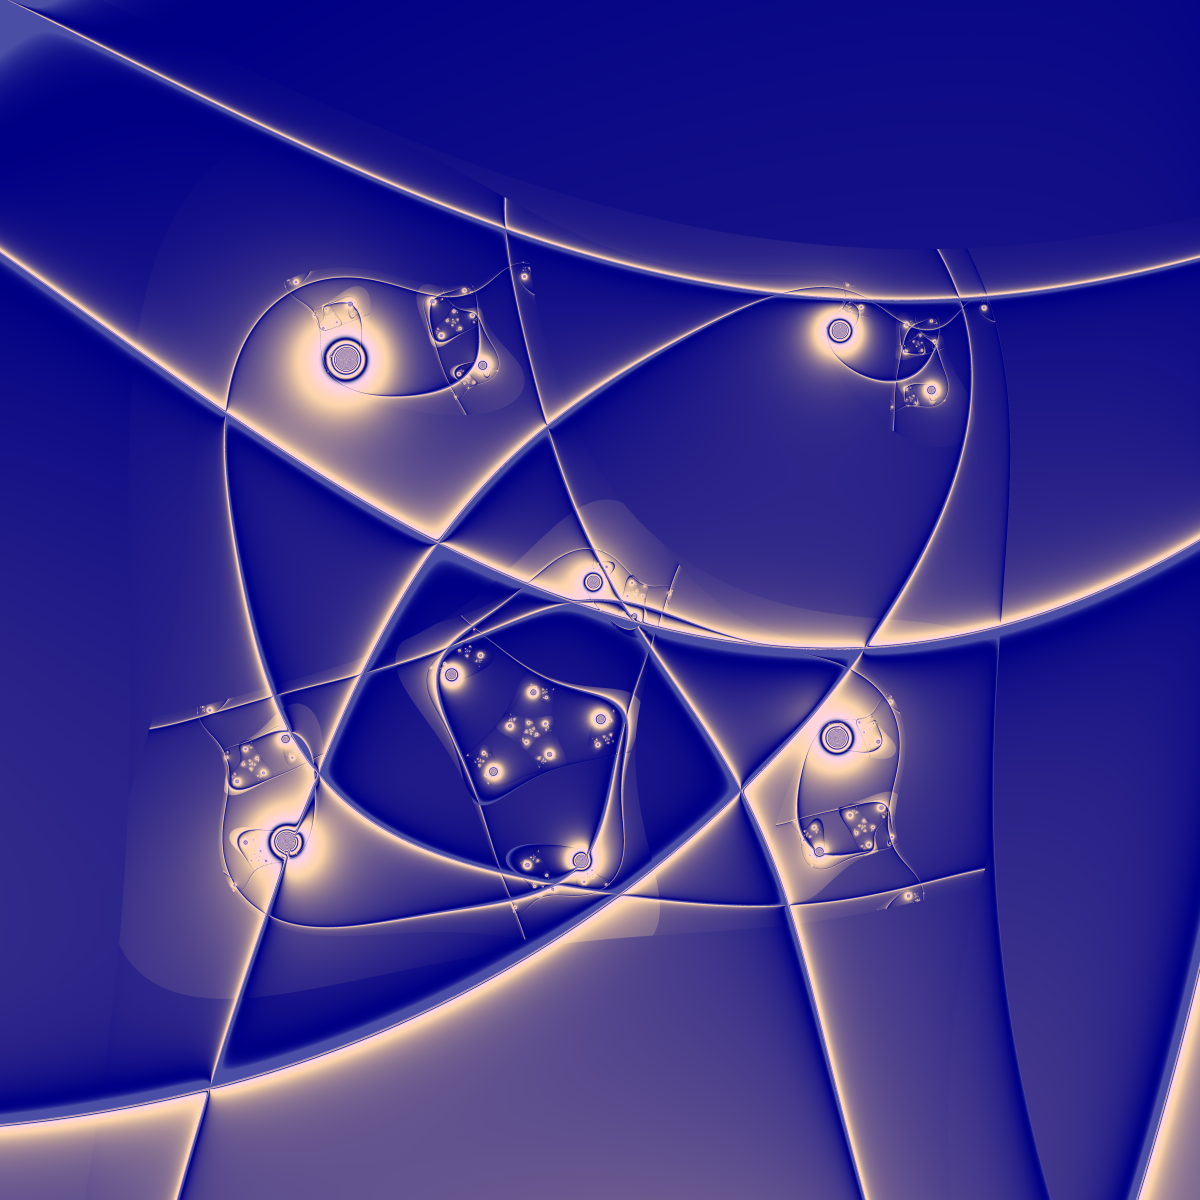 Mad blue orbits by scottVee